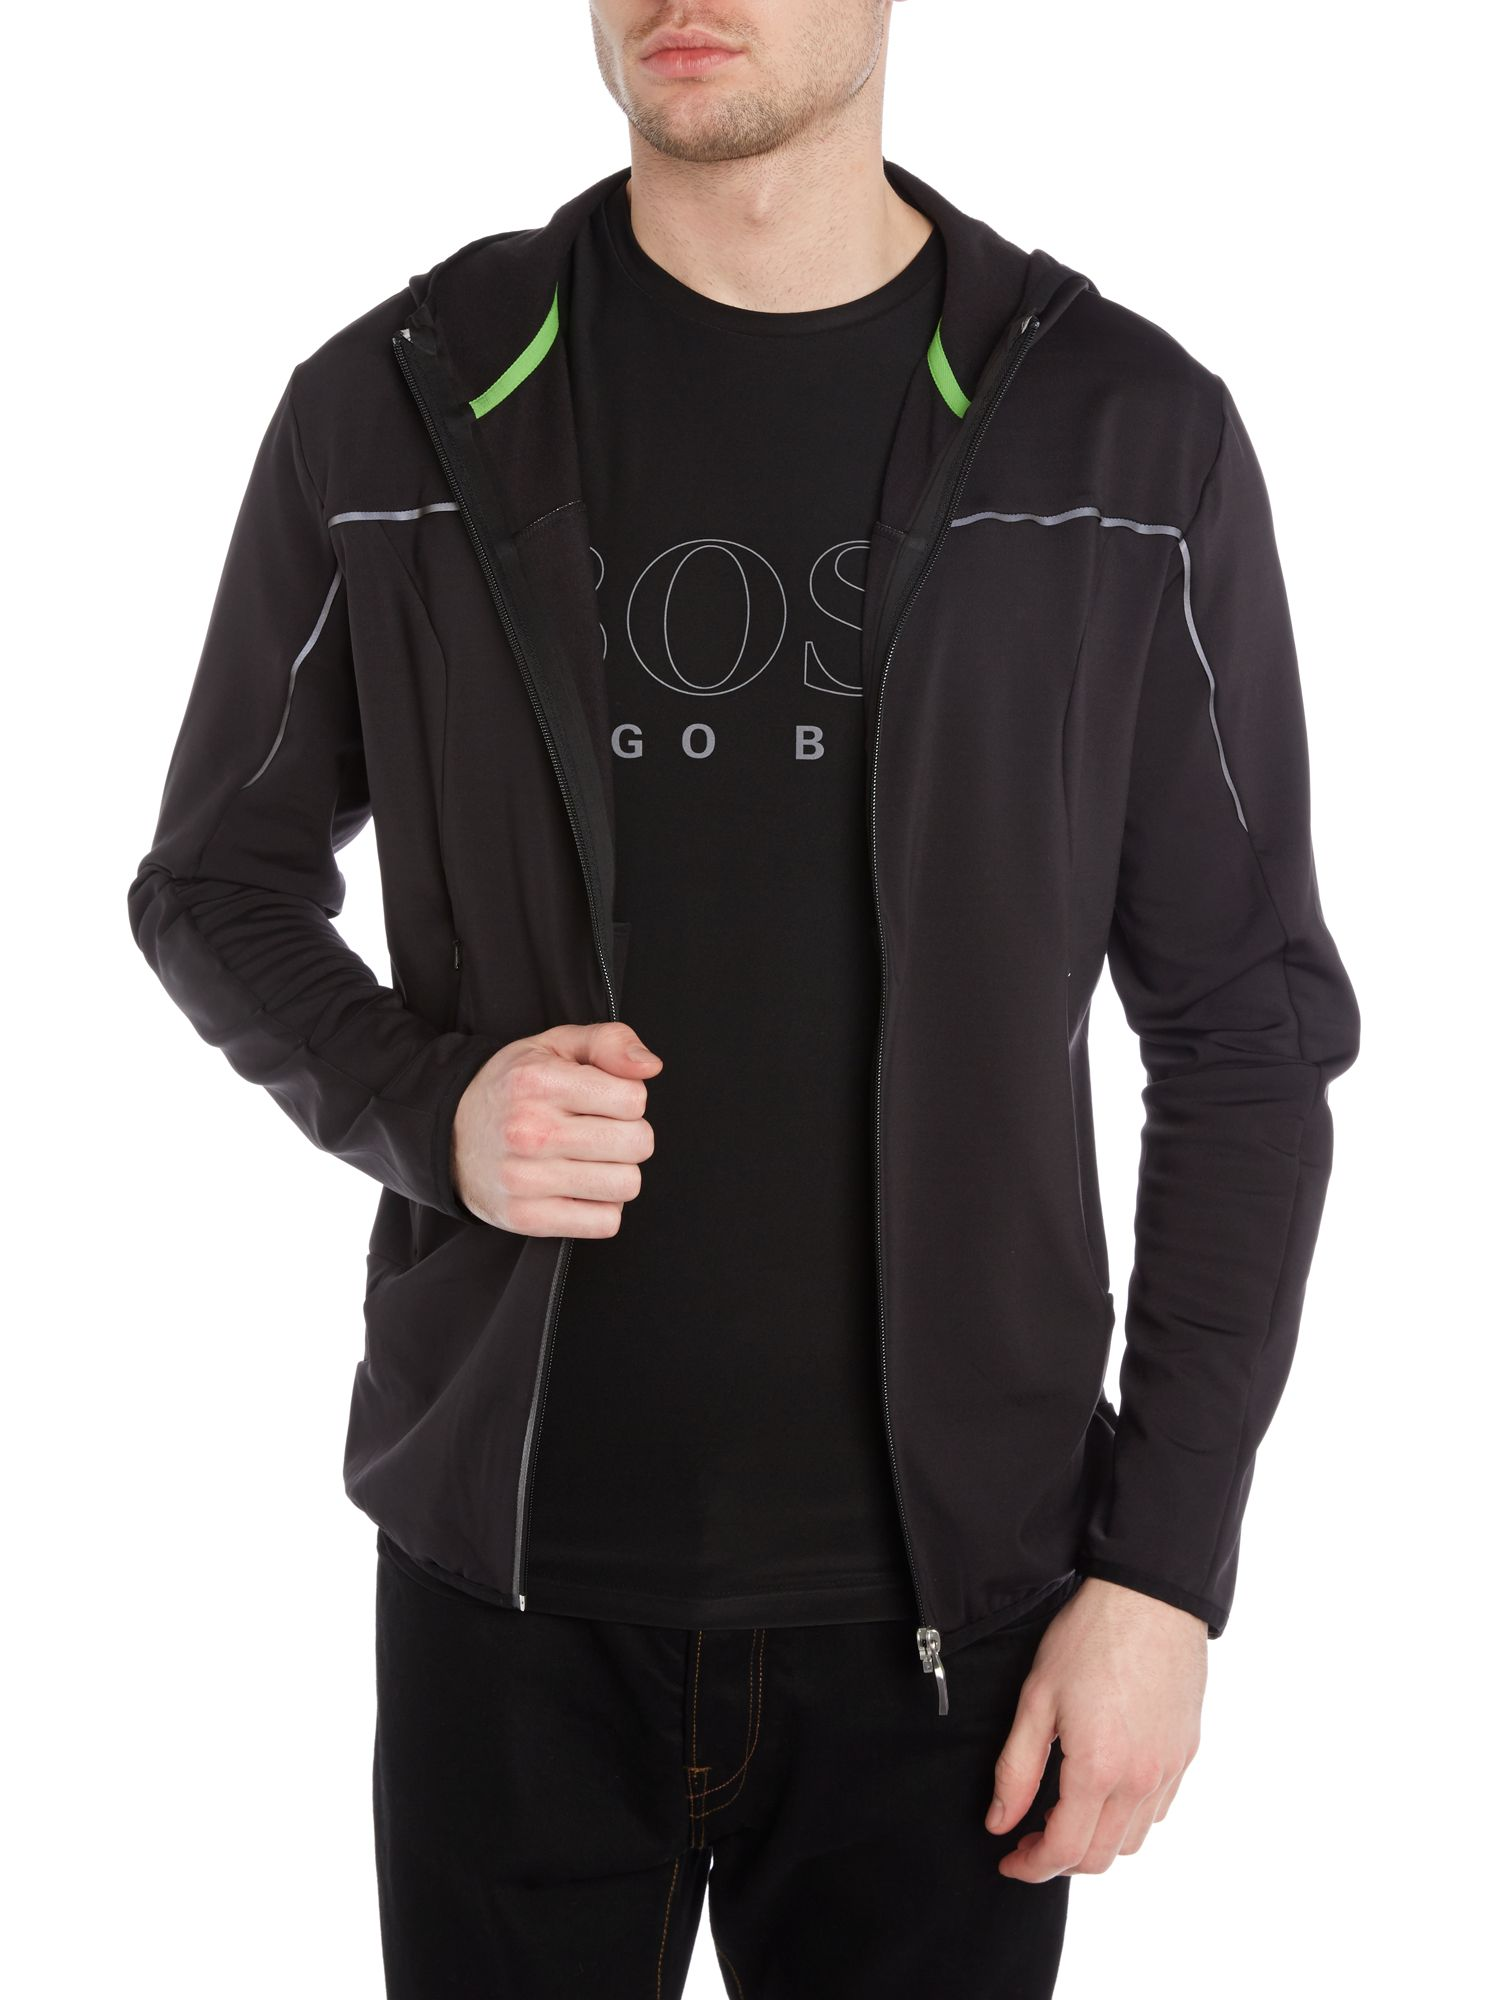 Boss active sweatshirt